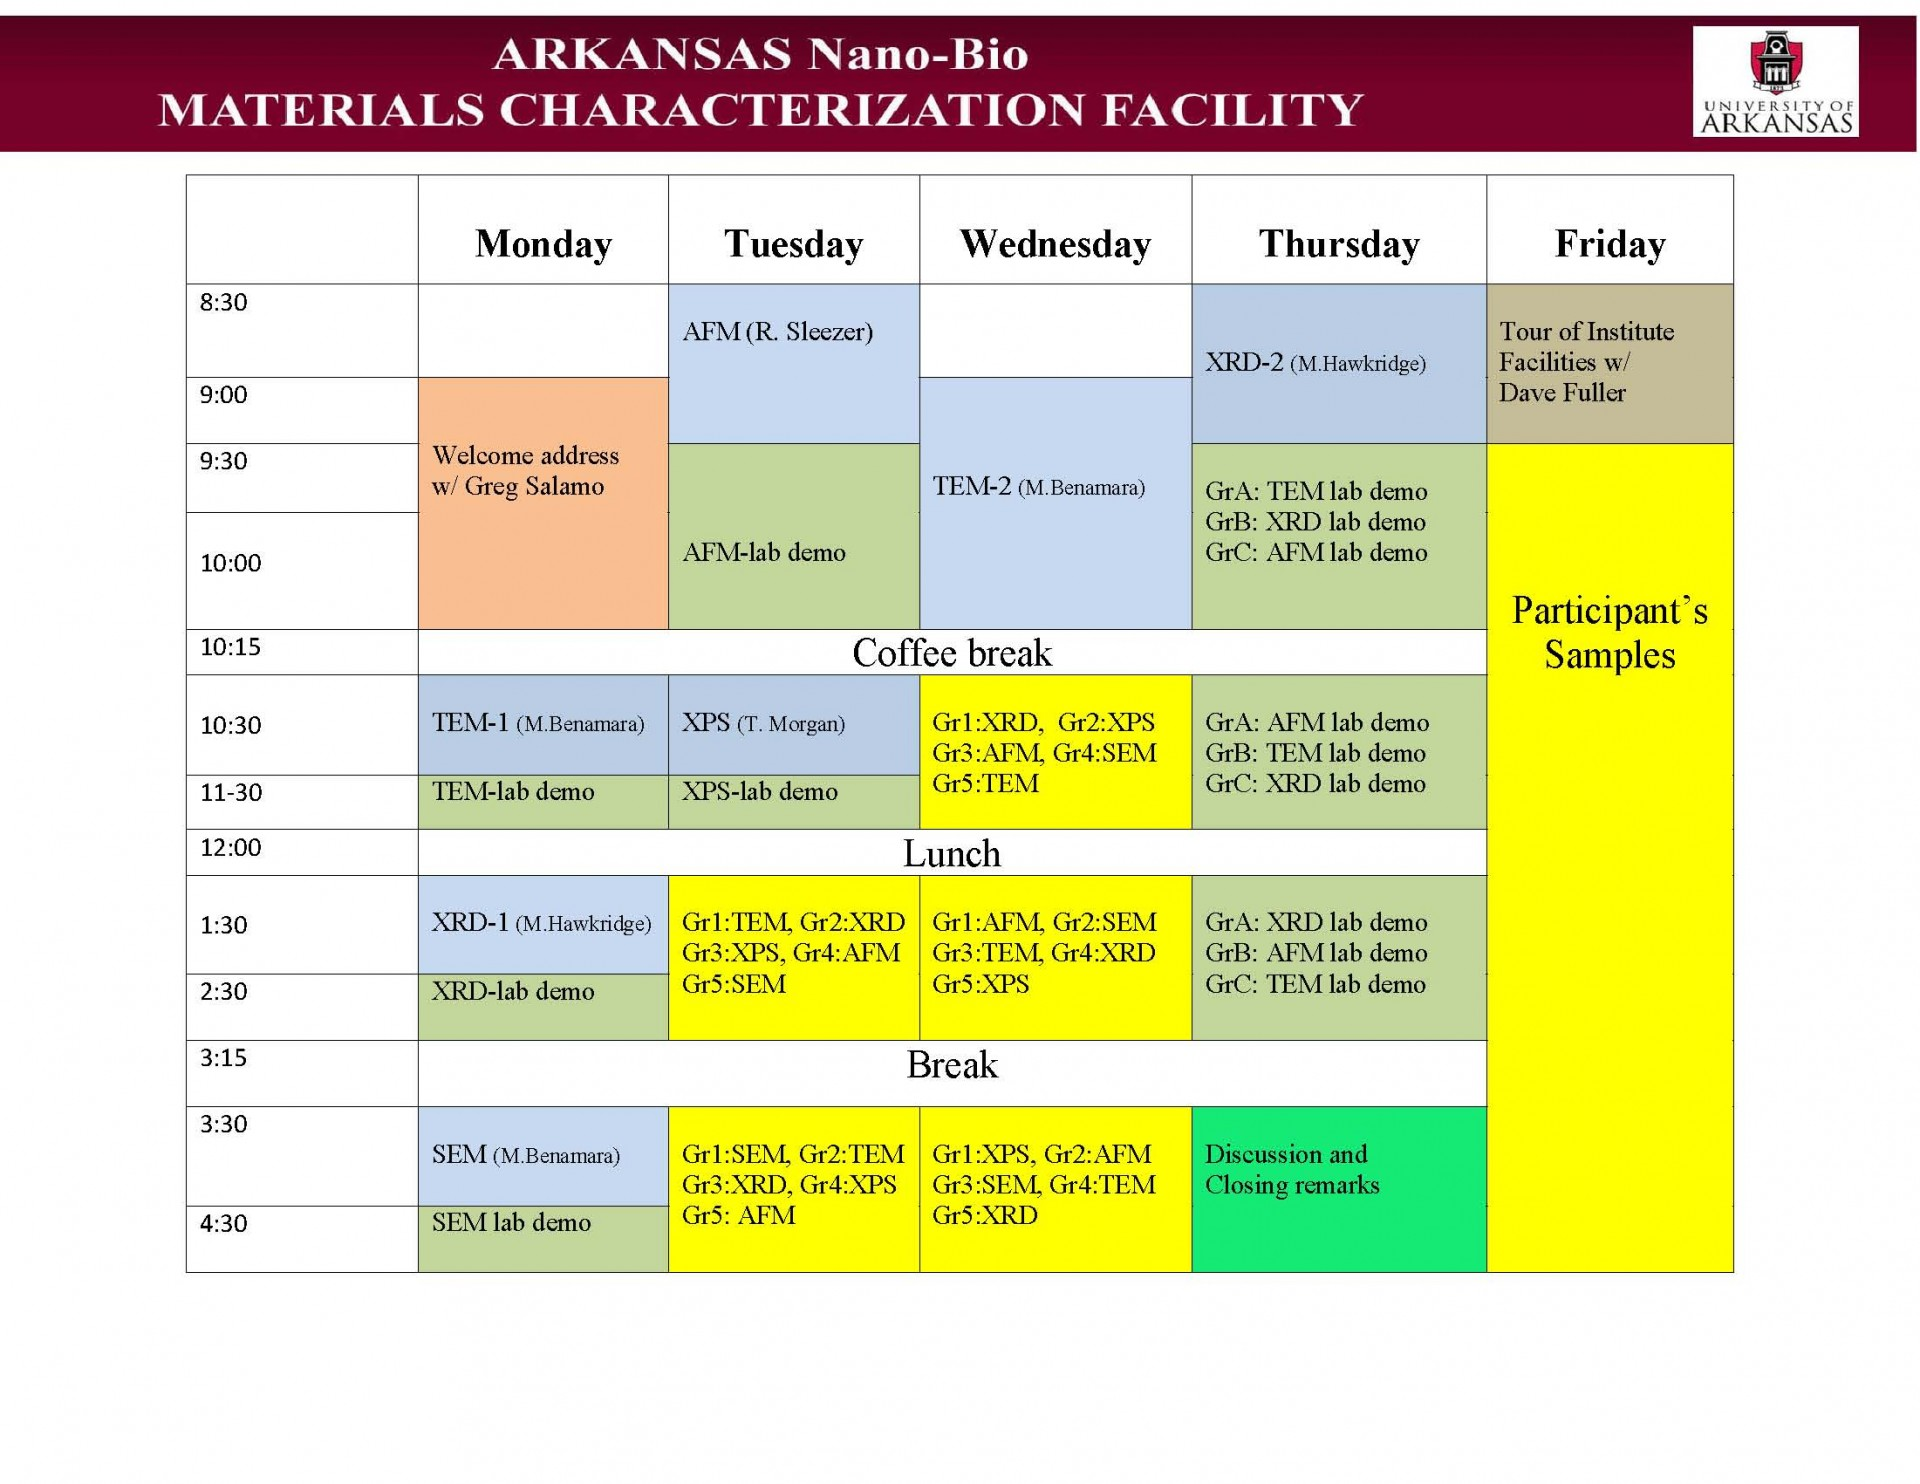 Materials Characterization Schedule